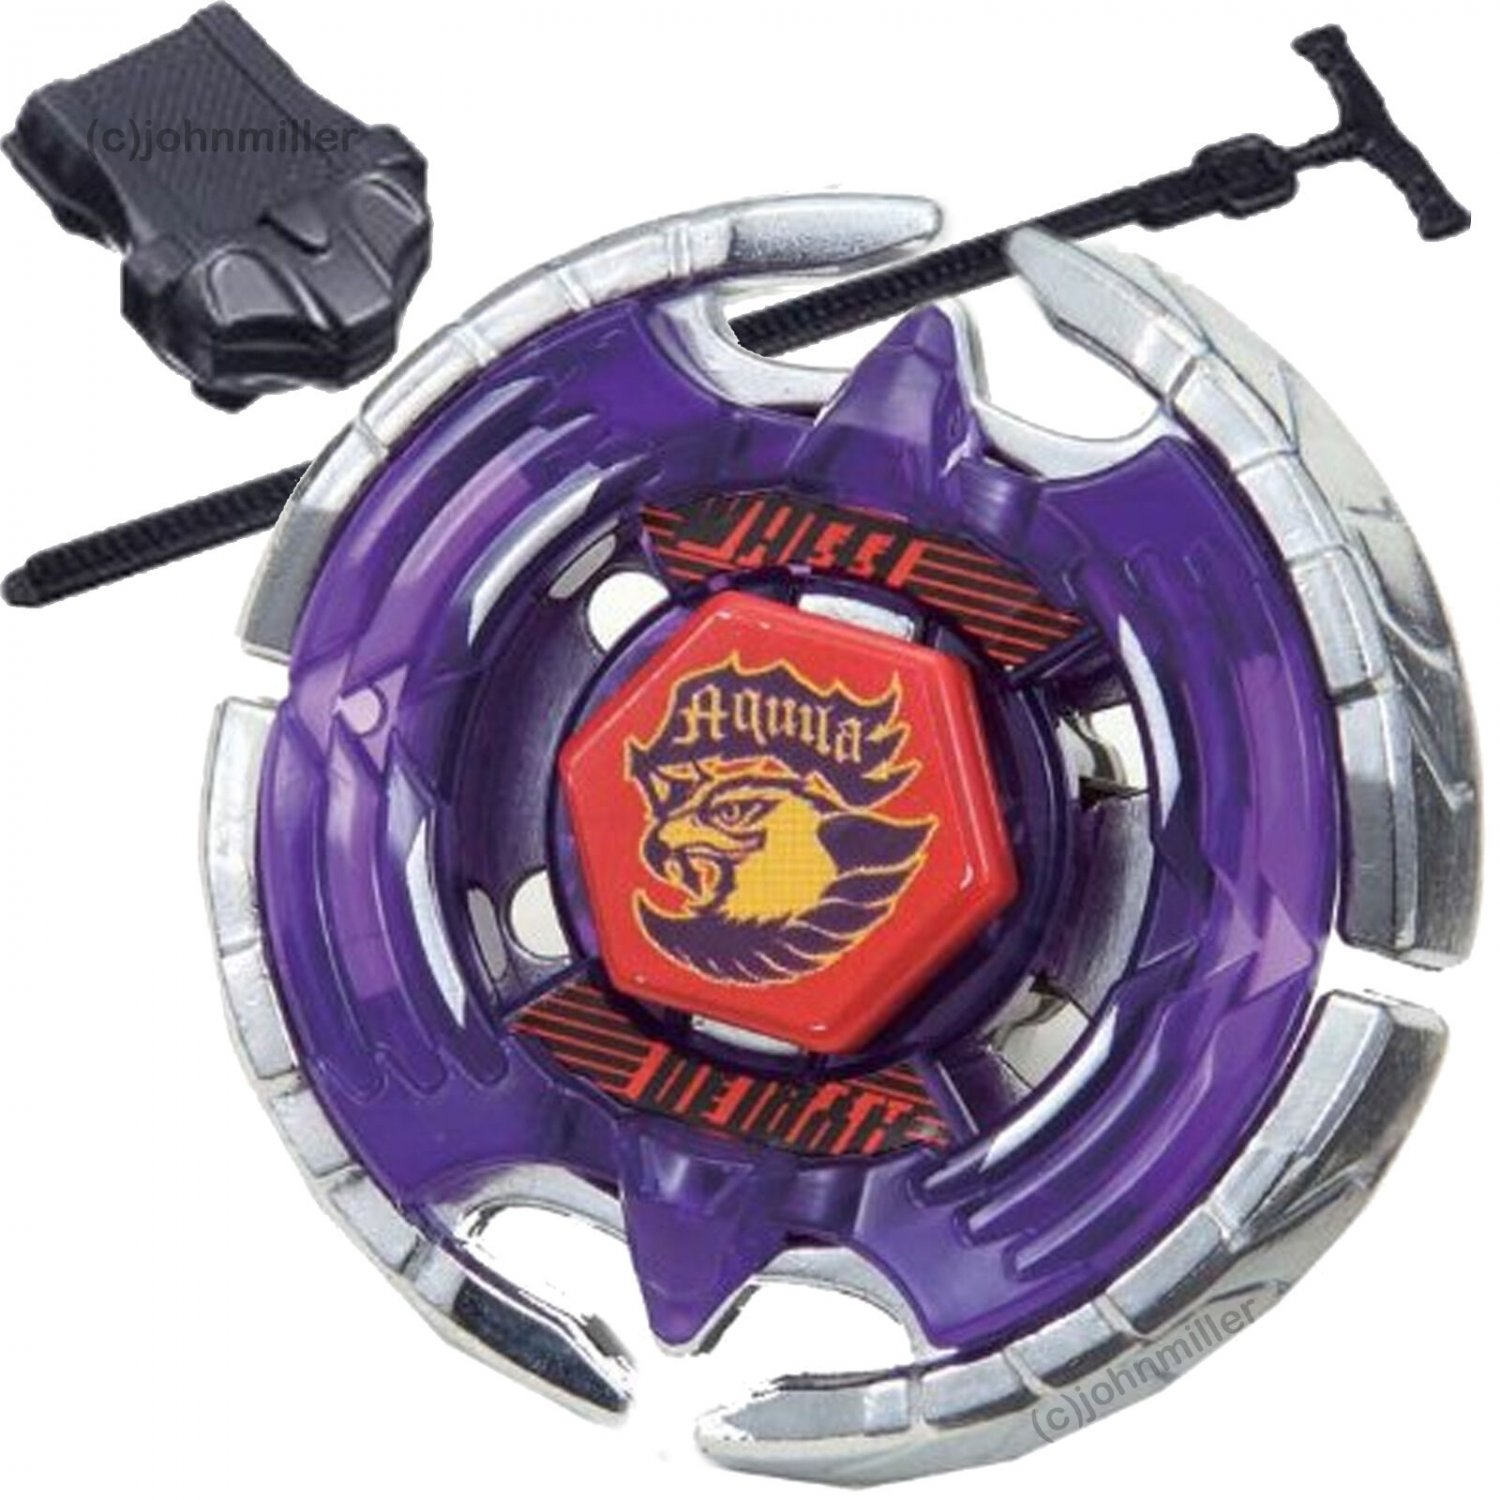 BEST SELLER Earth Eagle (Aquila) 145WD Beyblade BB-47 STARTER SET w/ Launcher & Ripcord